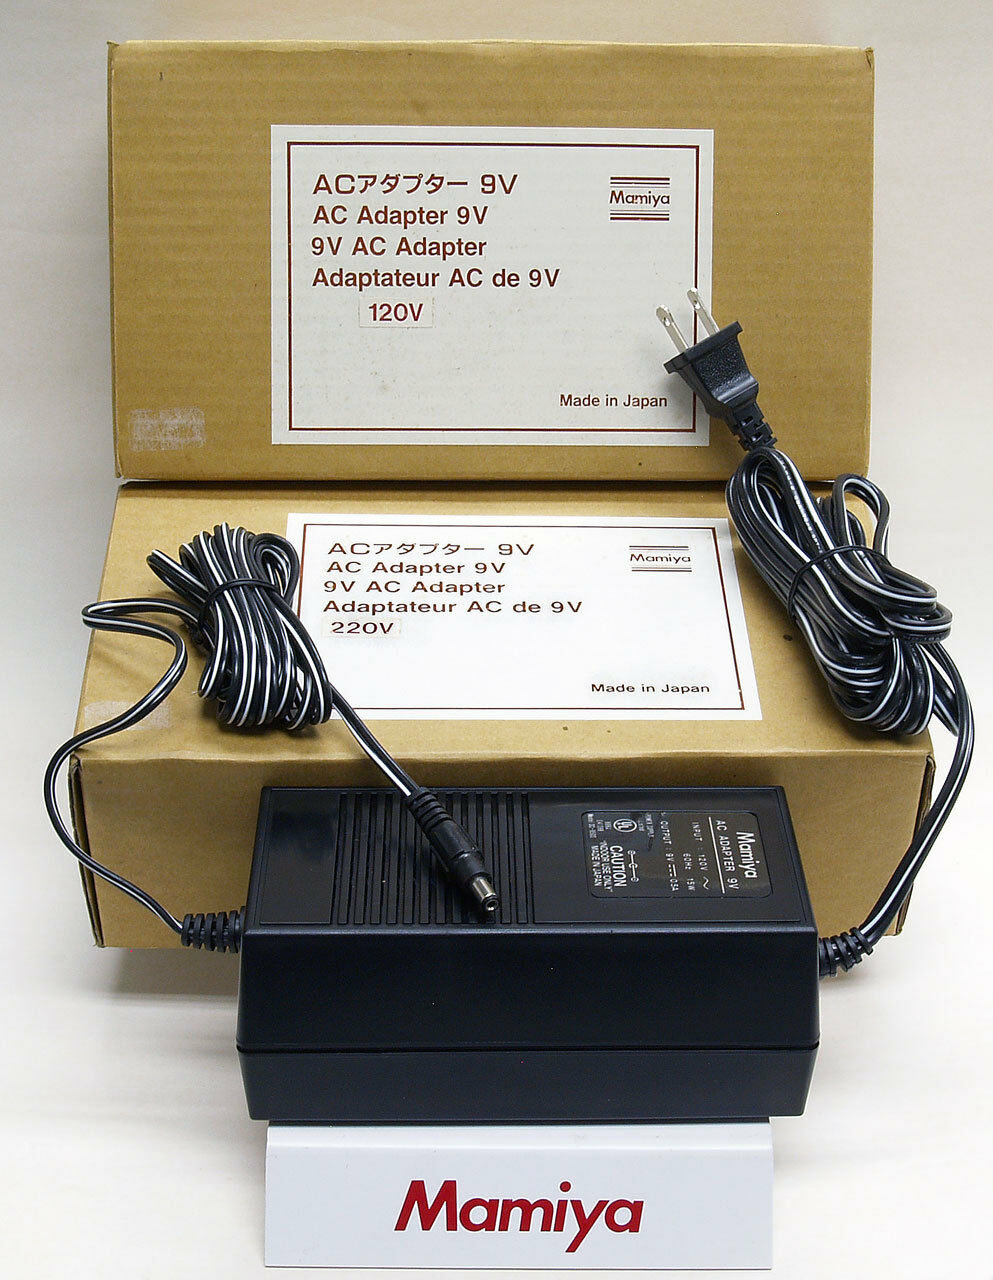 Mamiya Rz Pro Ii / Pro Iid Winder Ac Adapter (220 V) no More Batteries